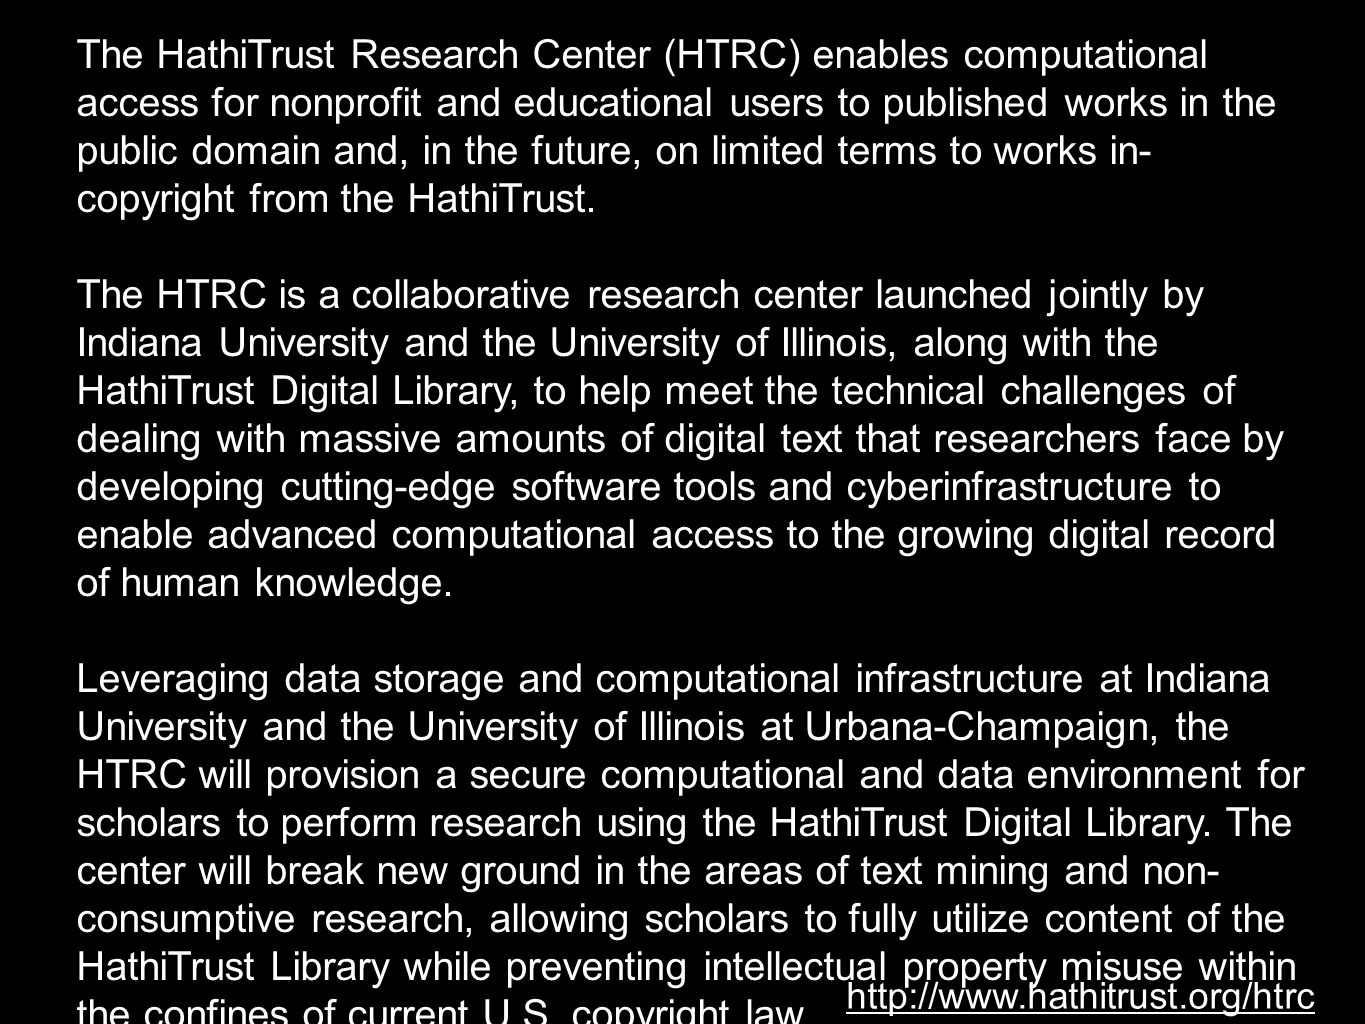 The HathiTrust Research Center (HTRC) enables computational access for nonprofit and educational users to published works in the public domain and, in the future, on limited terms to works in-copyright from the HathiTrust.